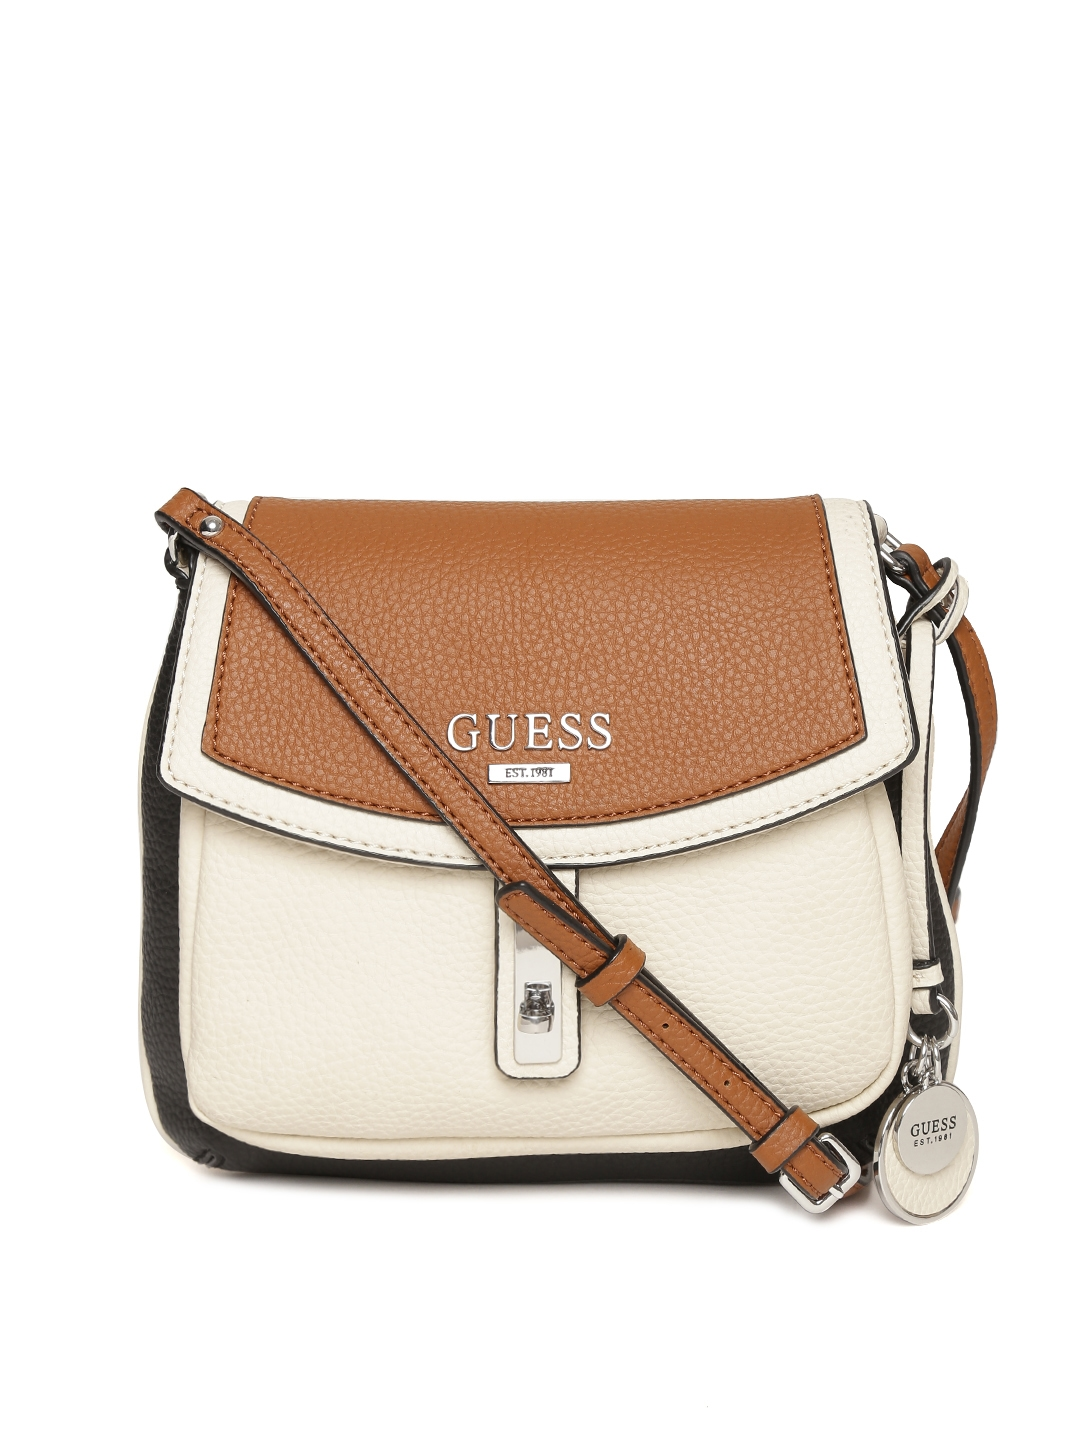 b8ab299ccb Buy GUESS Brown   Off White Colourblocked Sling Bag - Handbags for Women  1749500